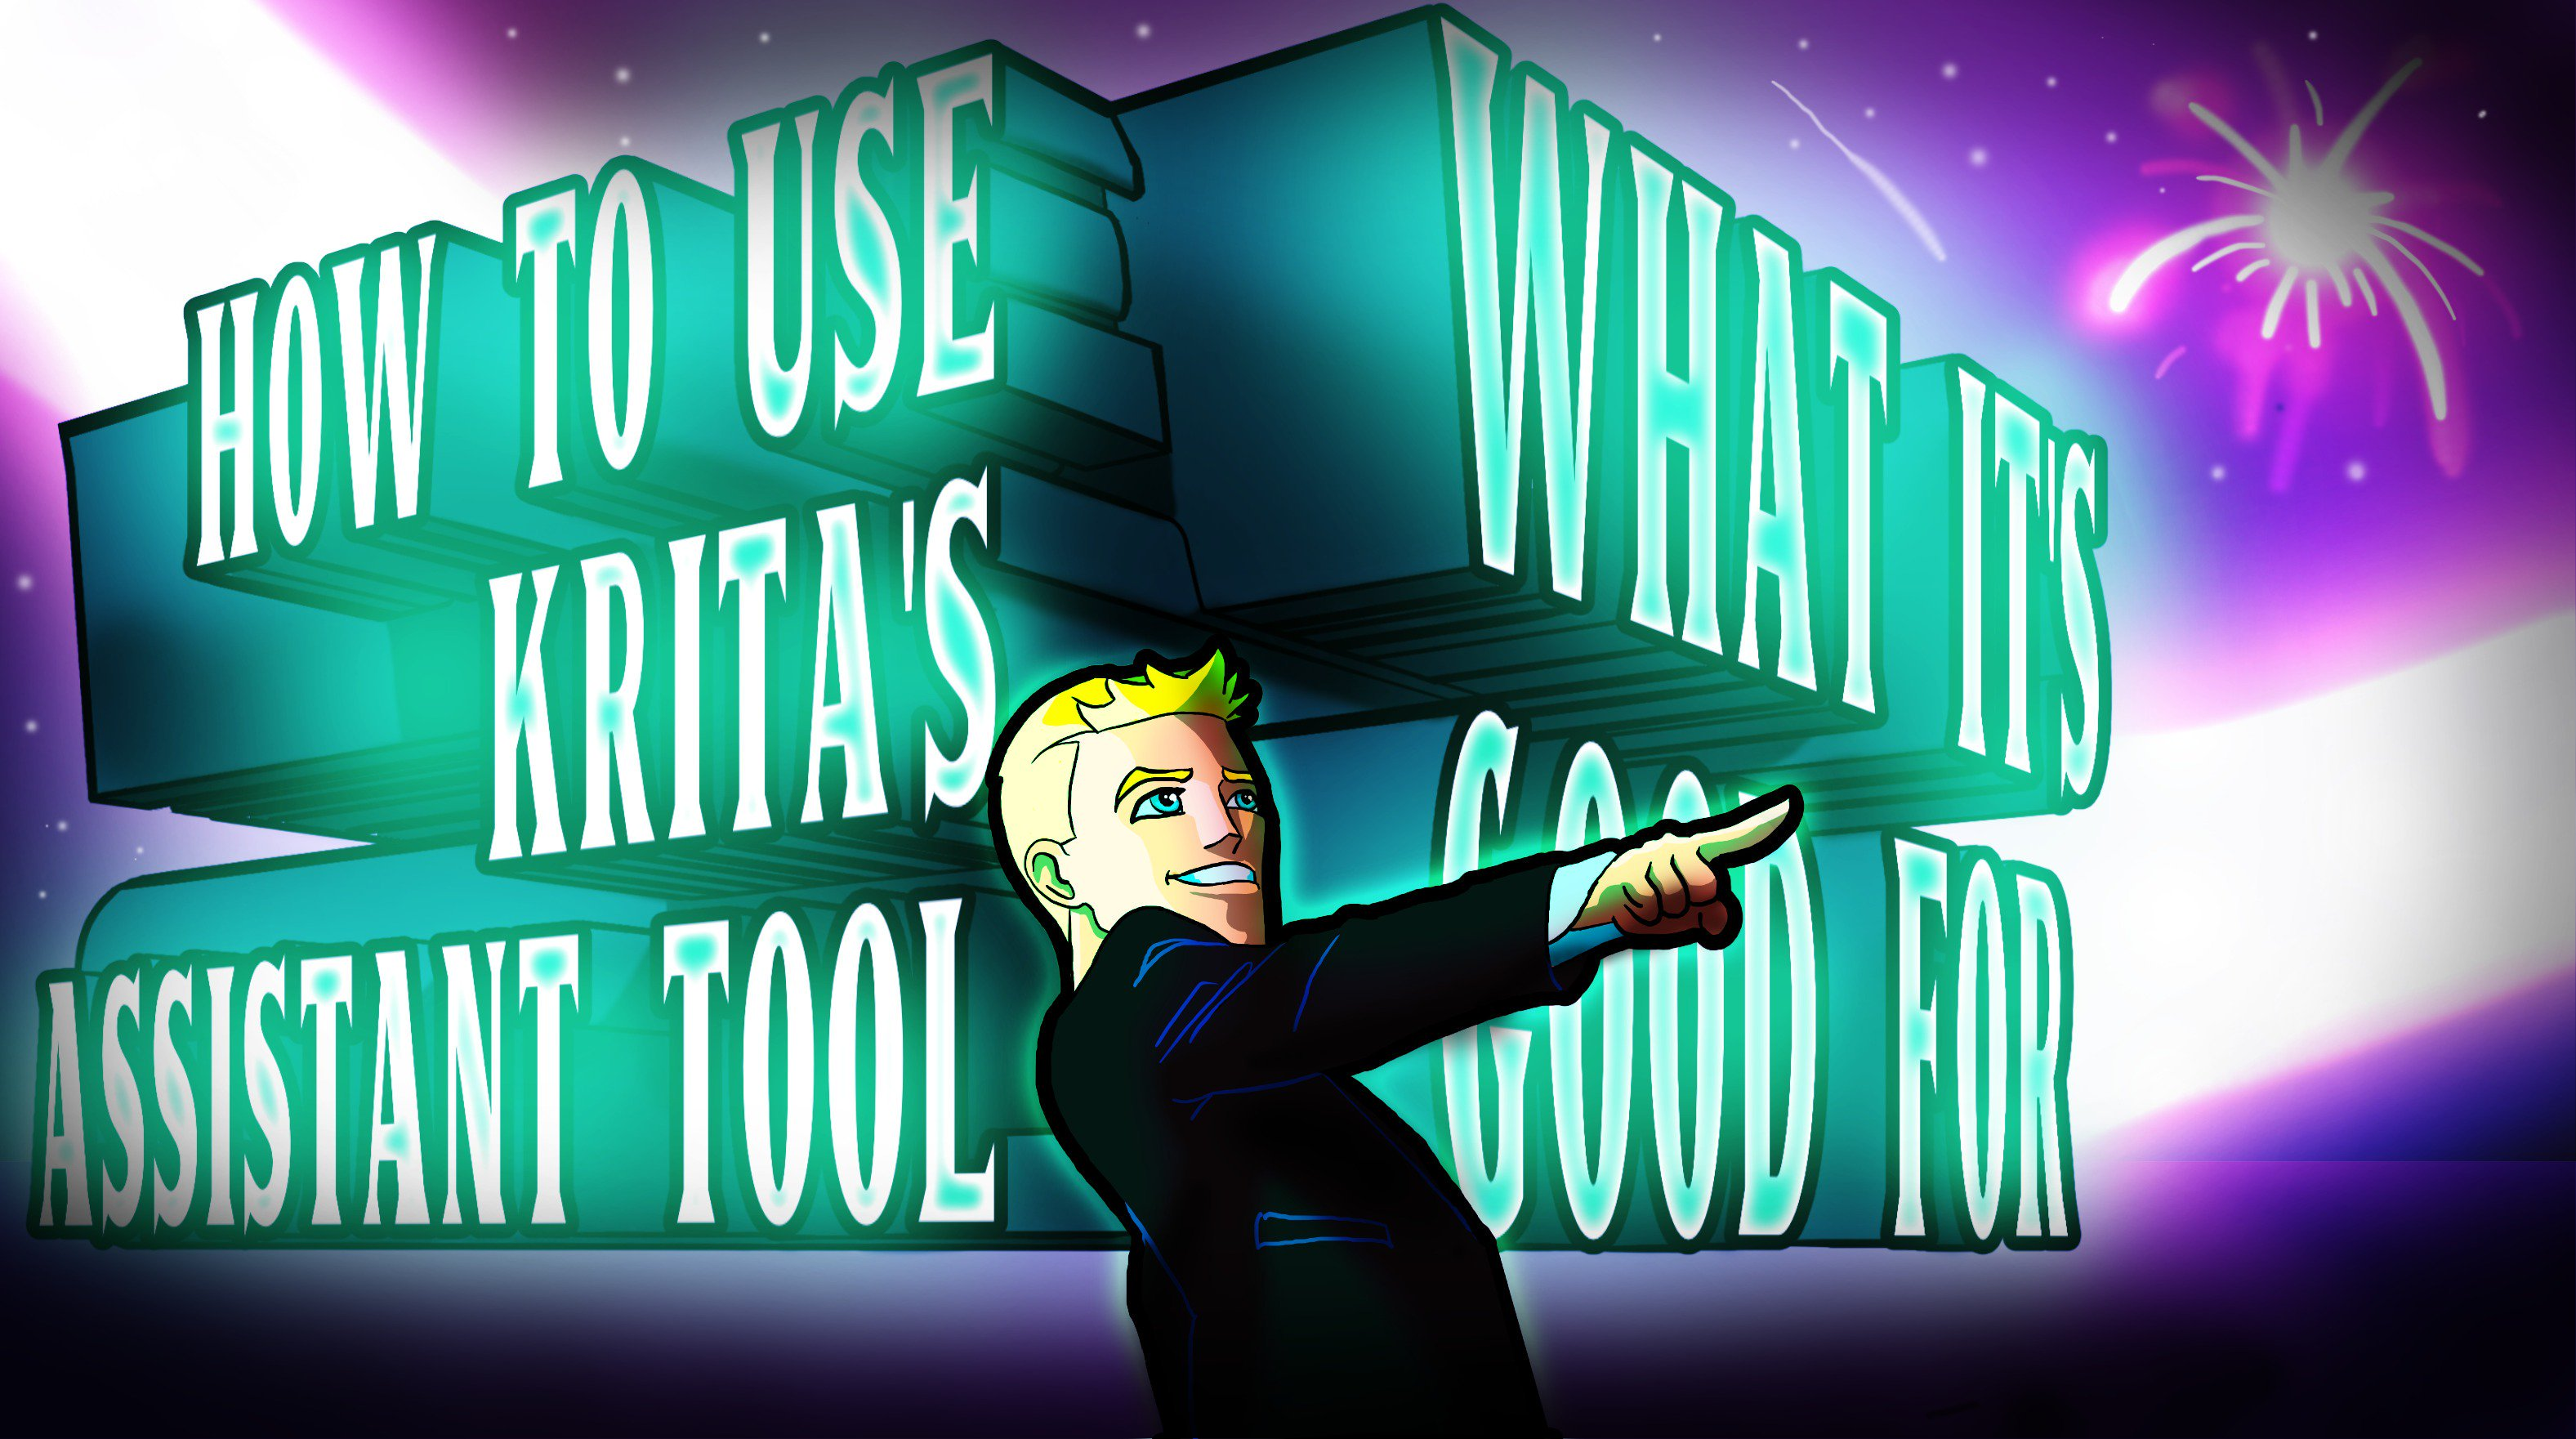 Krita's Assistant Tool: How Use It, What It's Good For